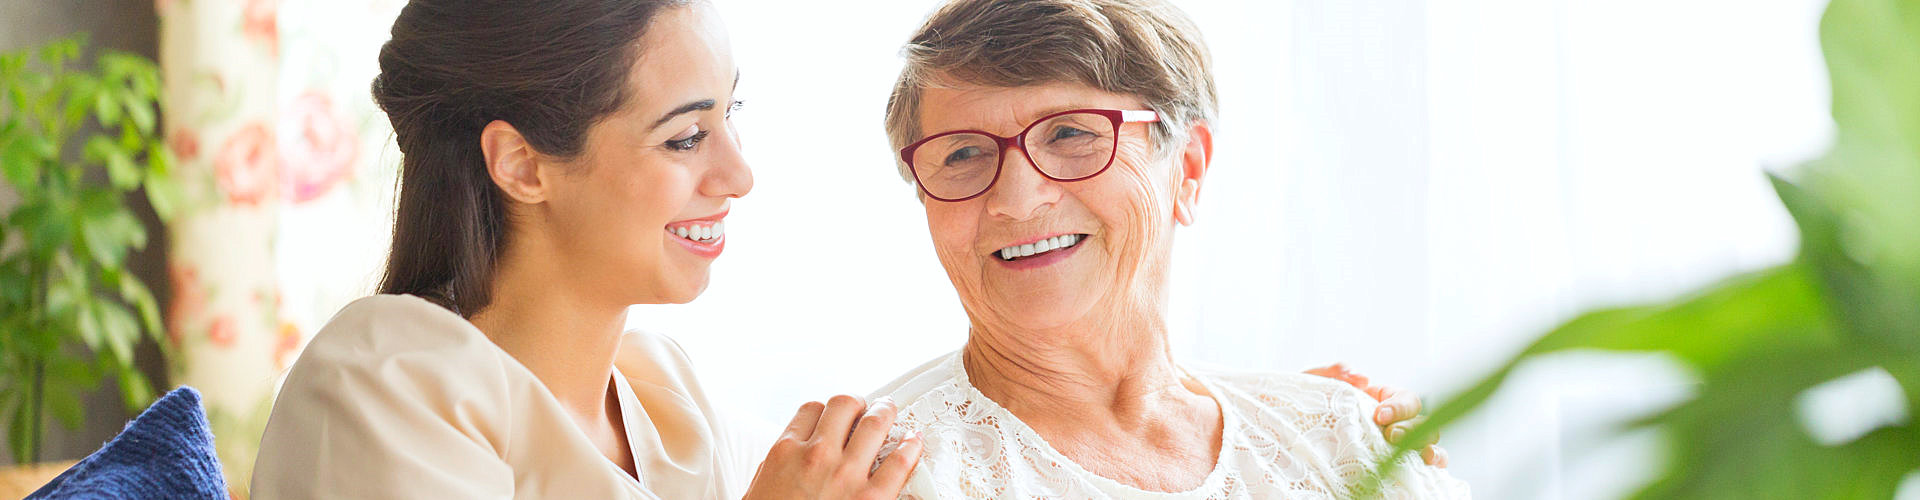 elderly with glasses smiling